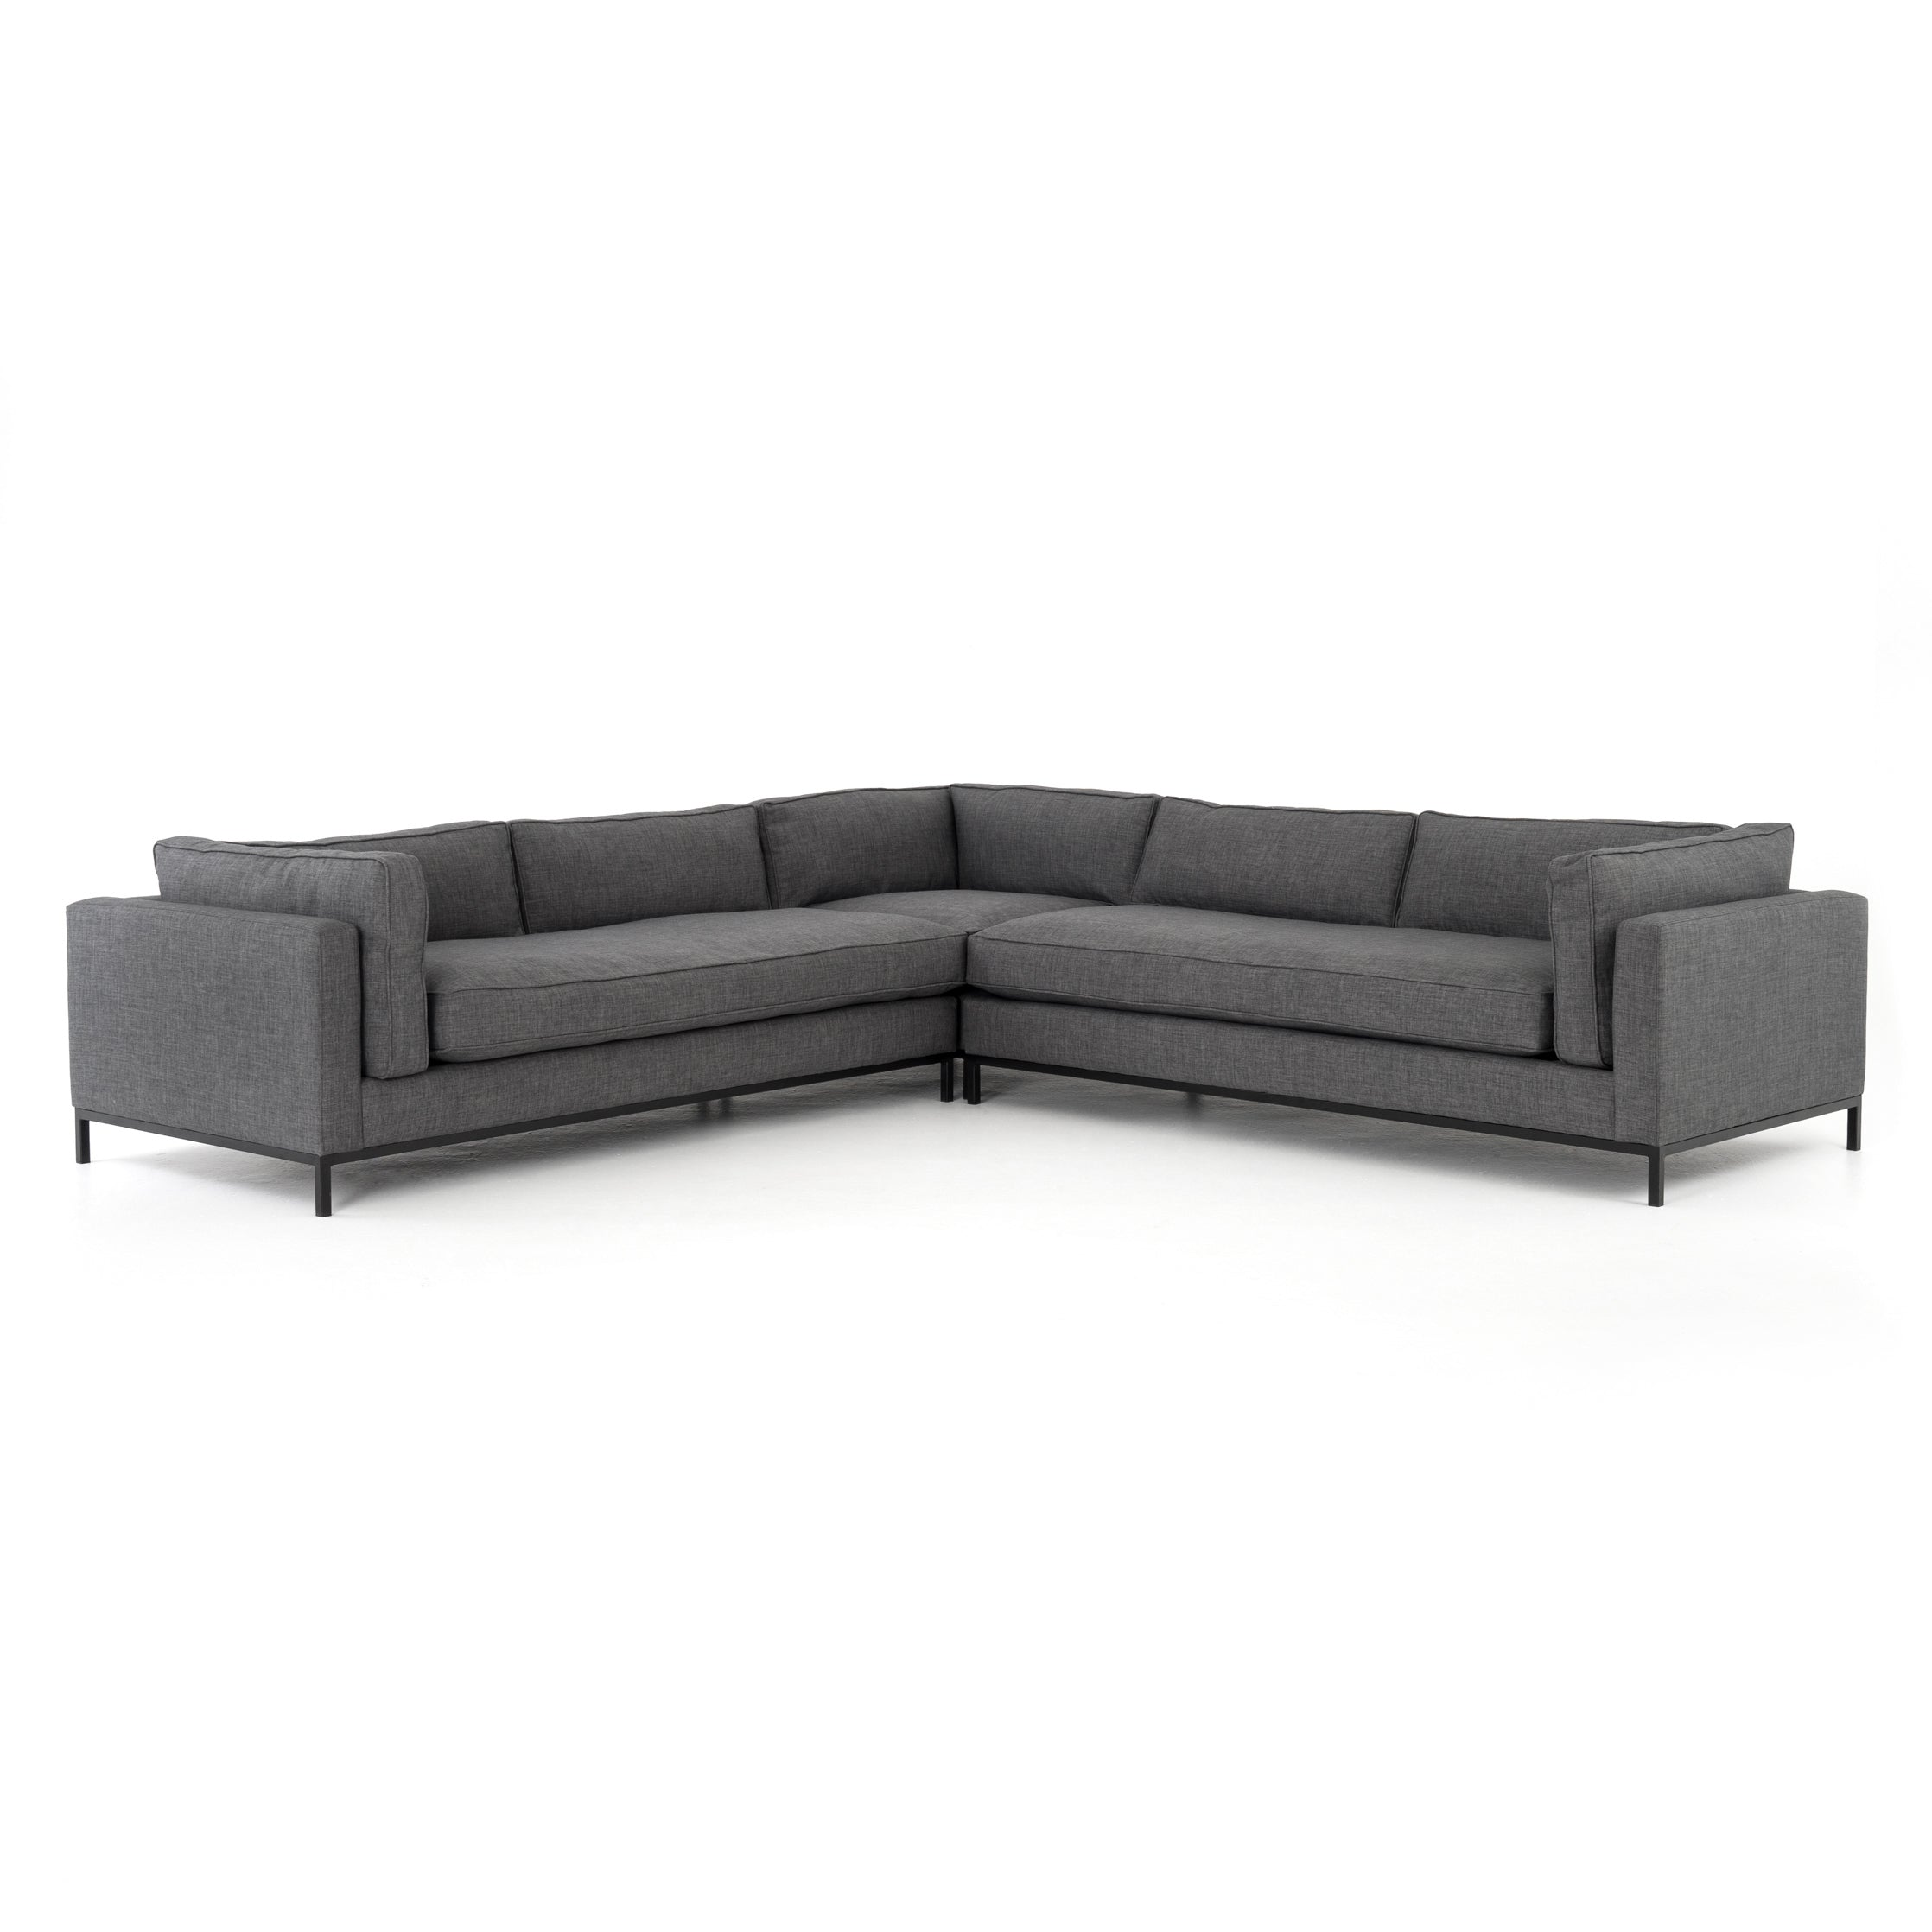 Grammercy 3-Pc Sectional-Bennett Charcoa